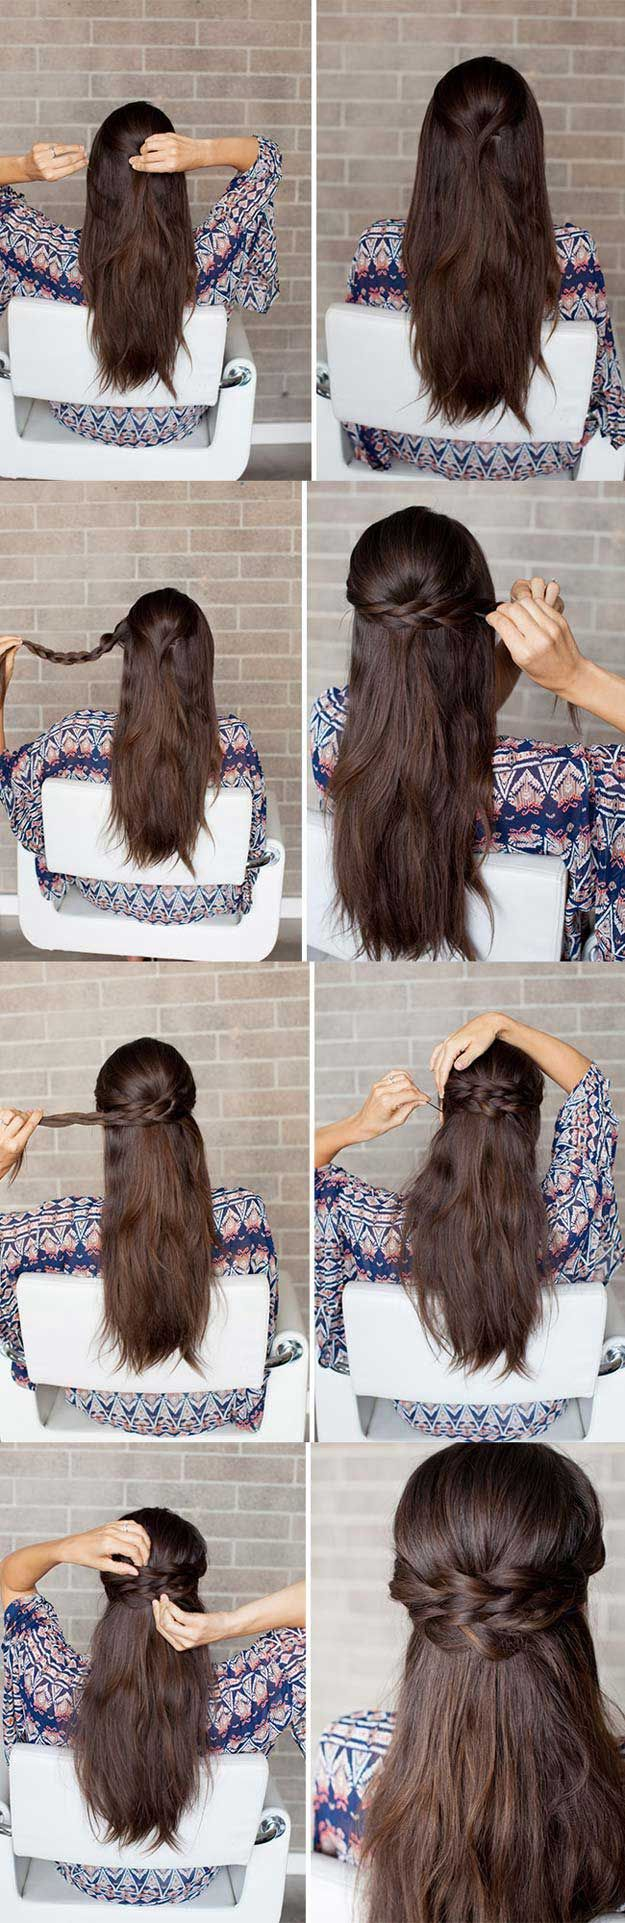 31 Amazing Half Up Half Down Hairstyles For Long Hair The Goddess Long Hair Styles Braids For Long Hair Down Hairstyles For Long Hair